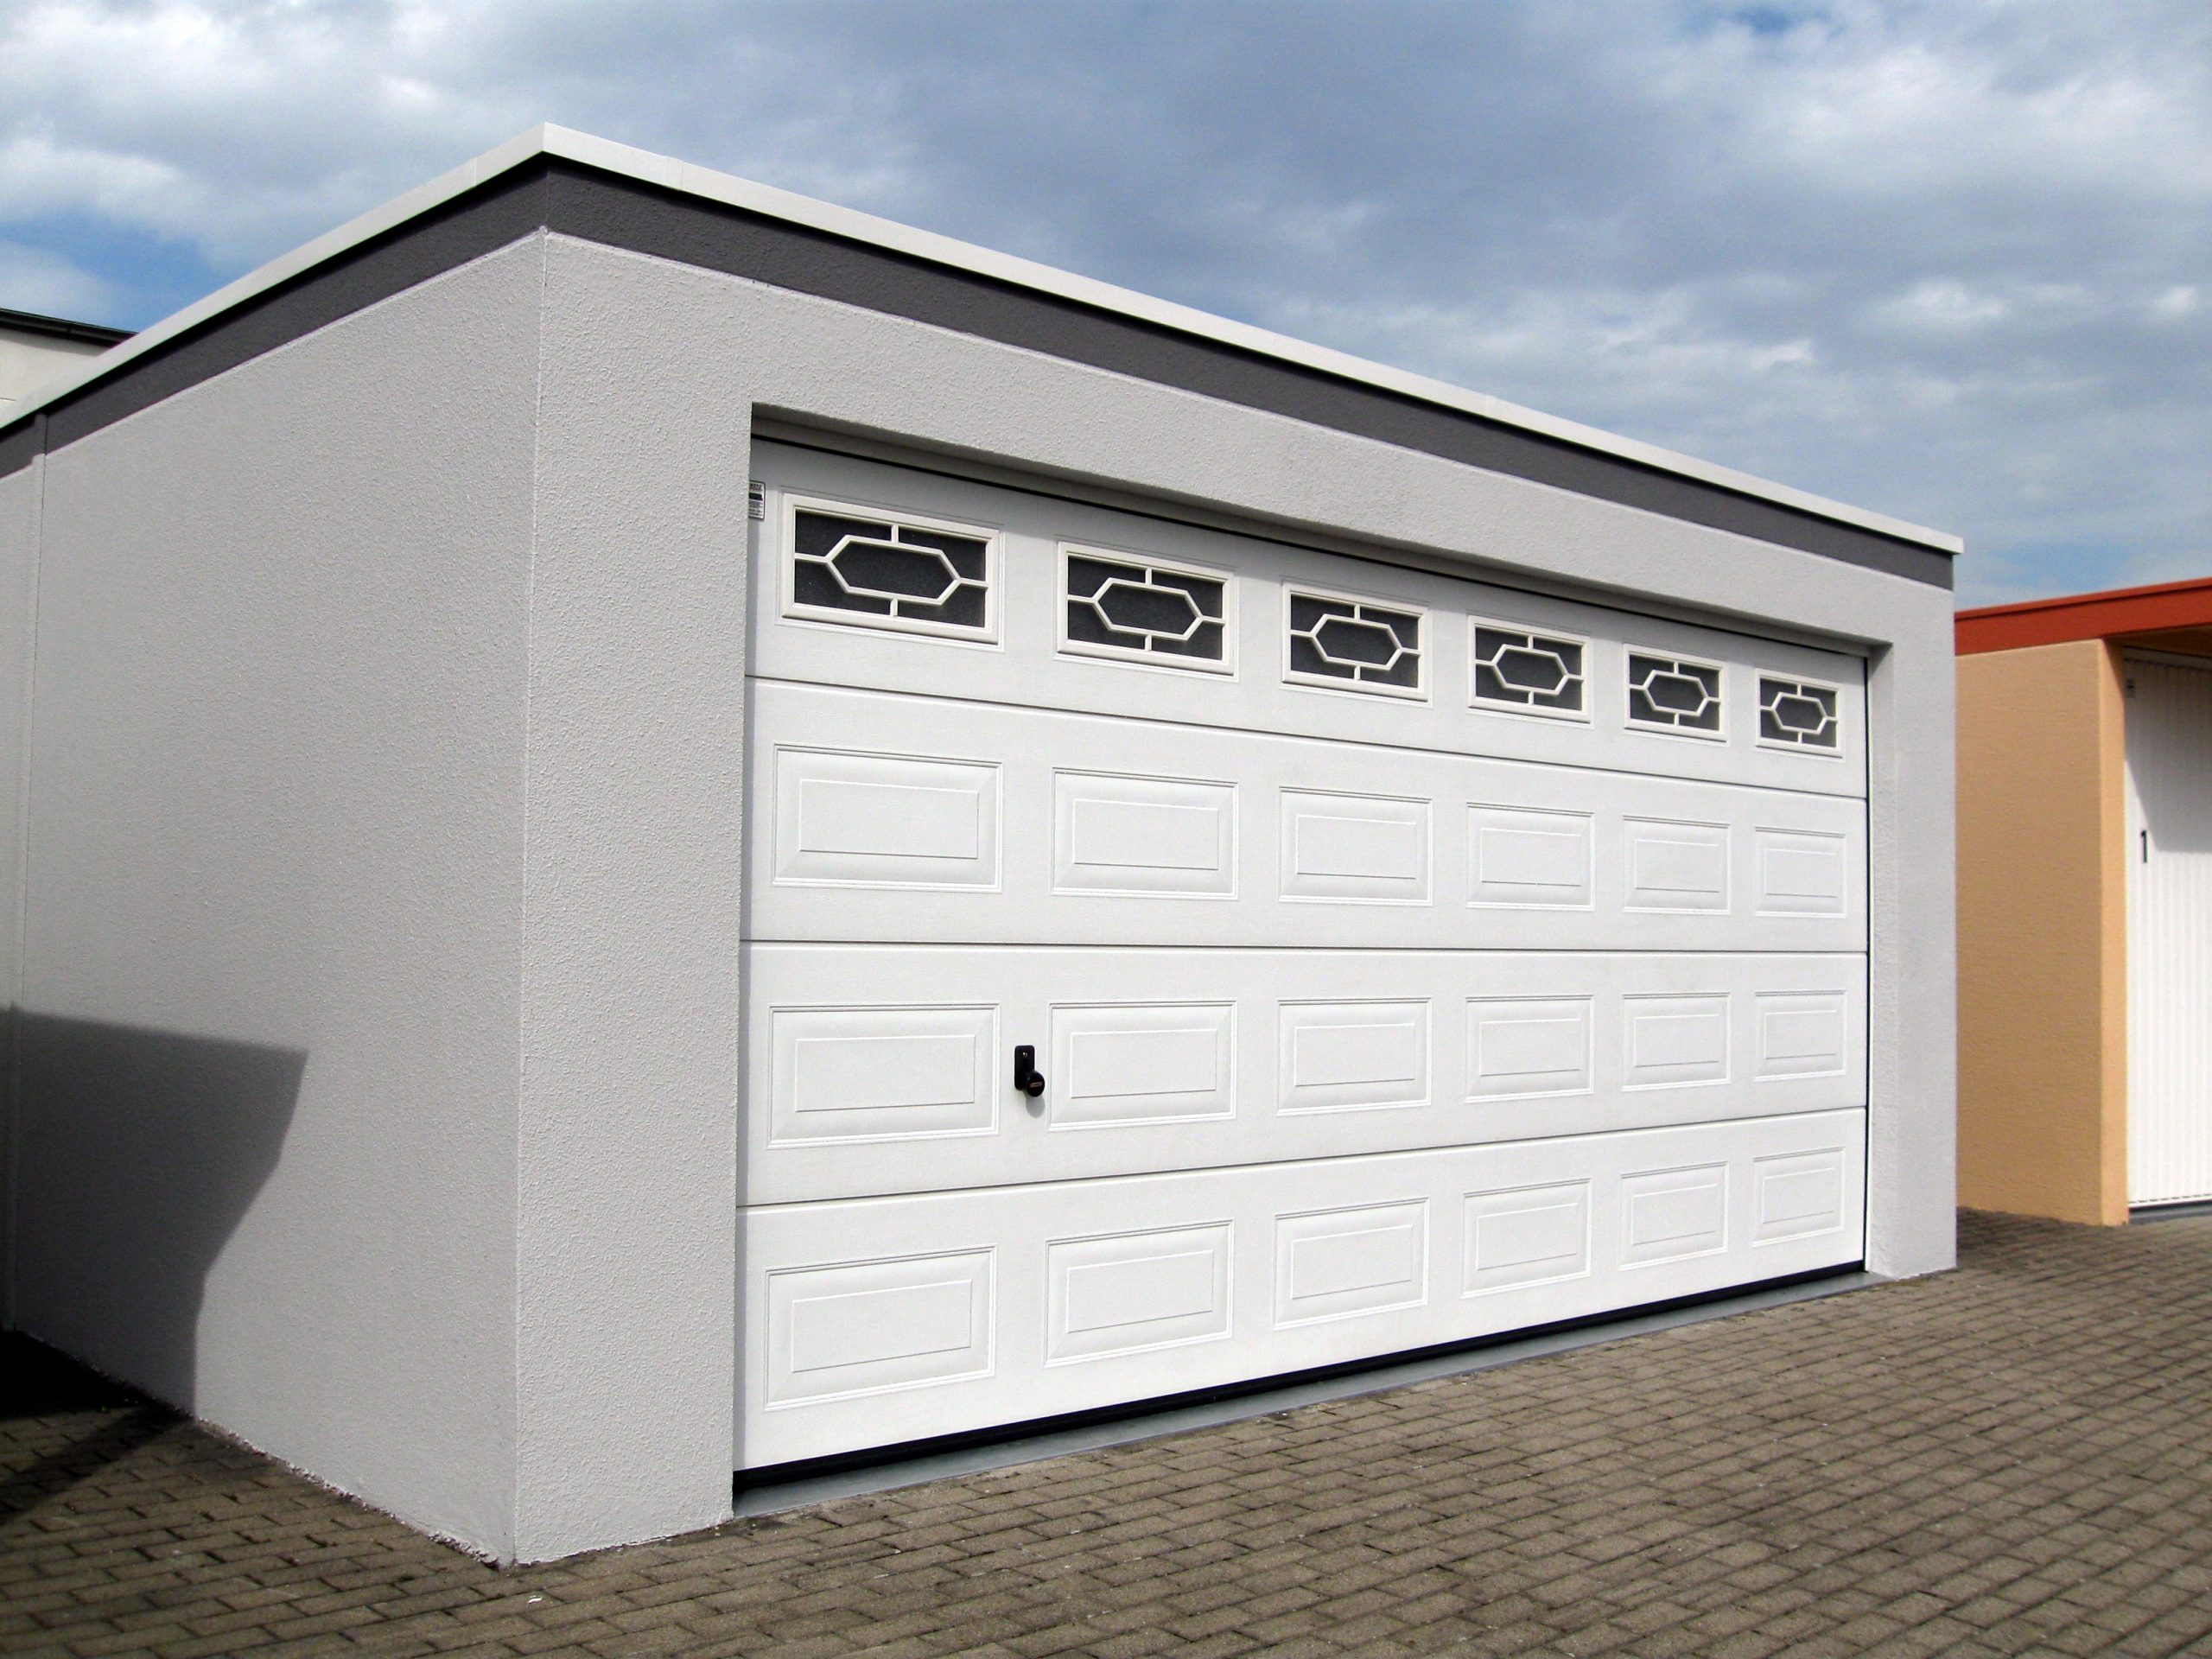 Garage door repair Illinois : All Information and Detailed Analysis